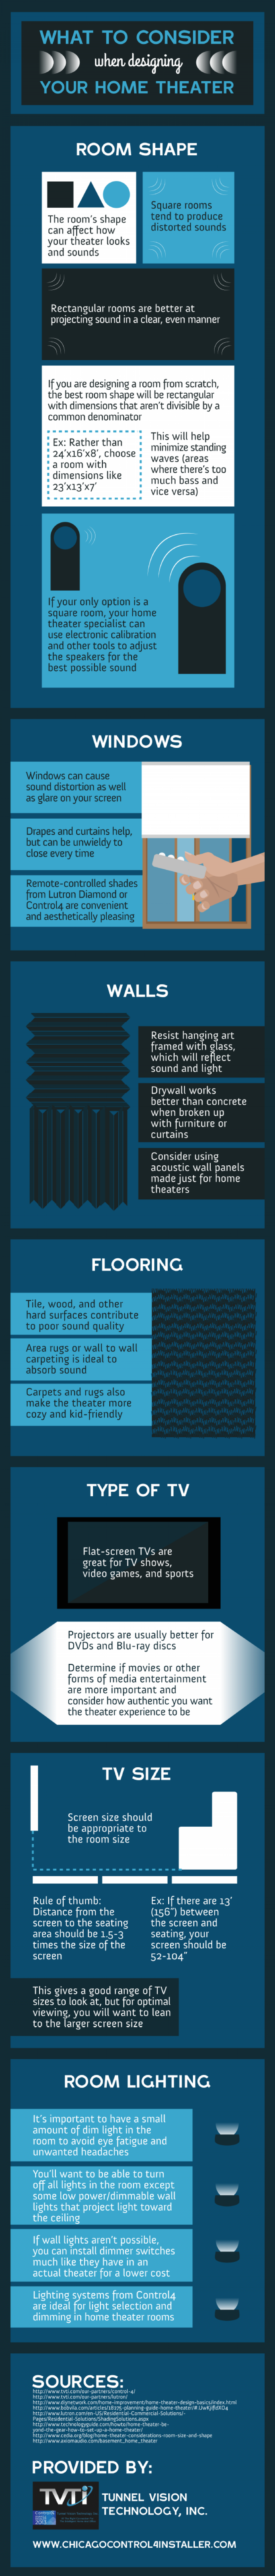 What to Consider When Designing Your Home Theater  Infographic